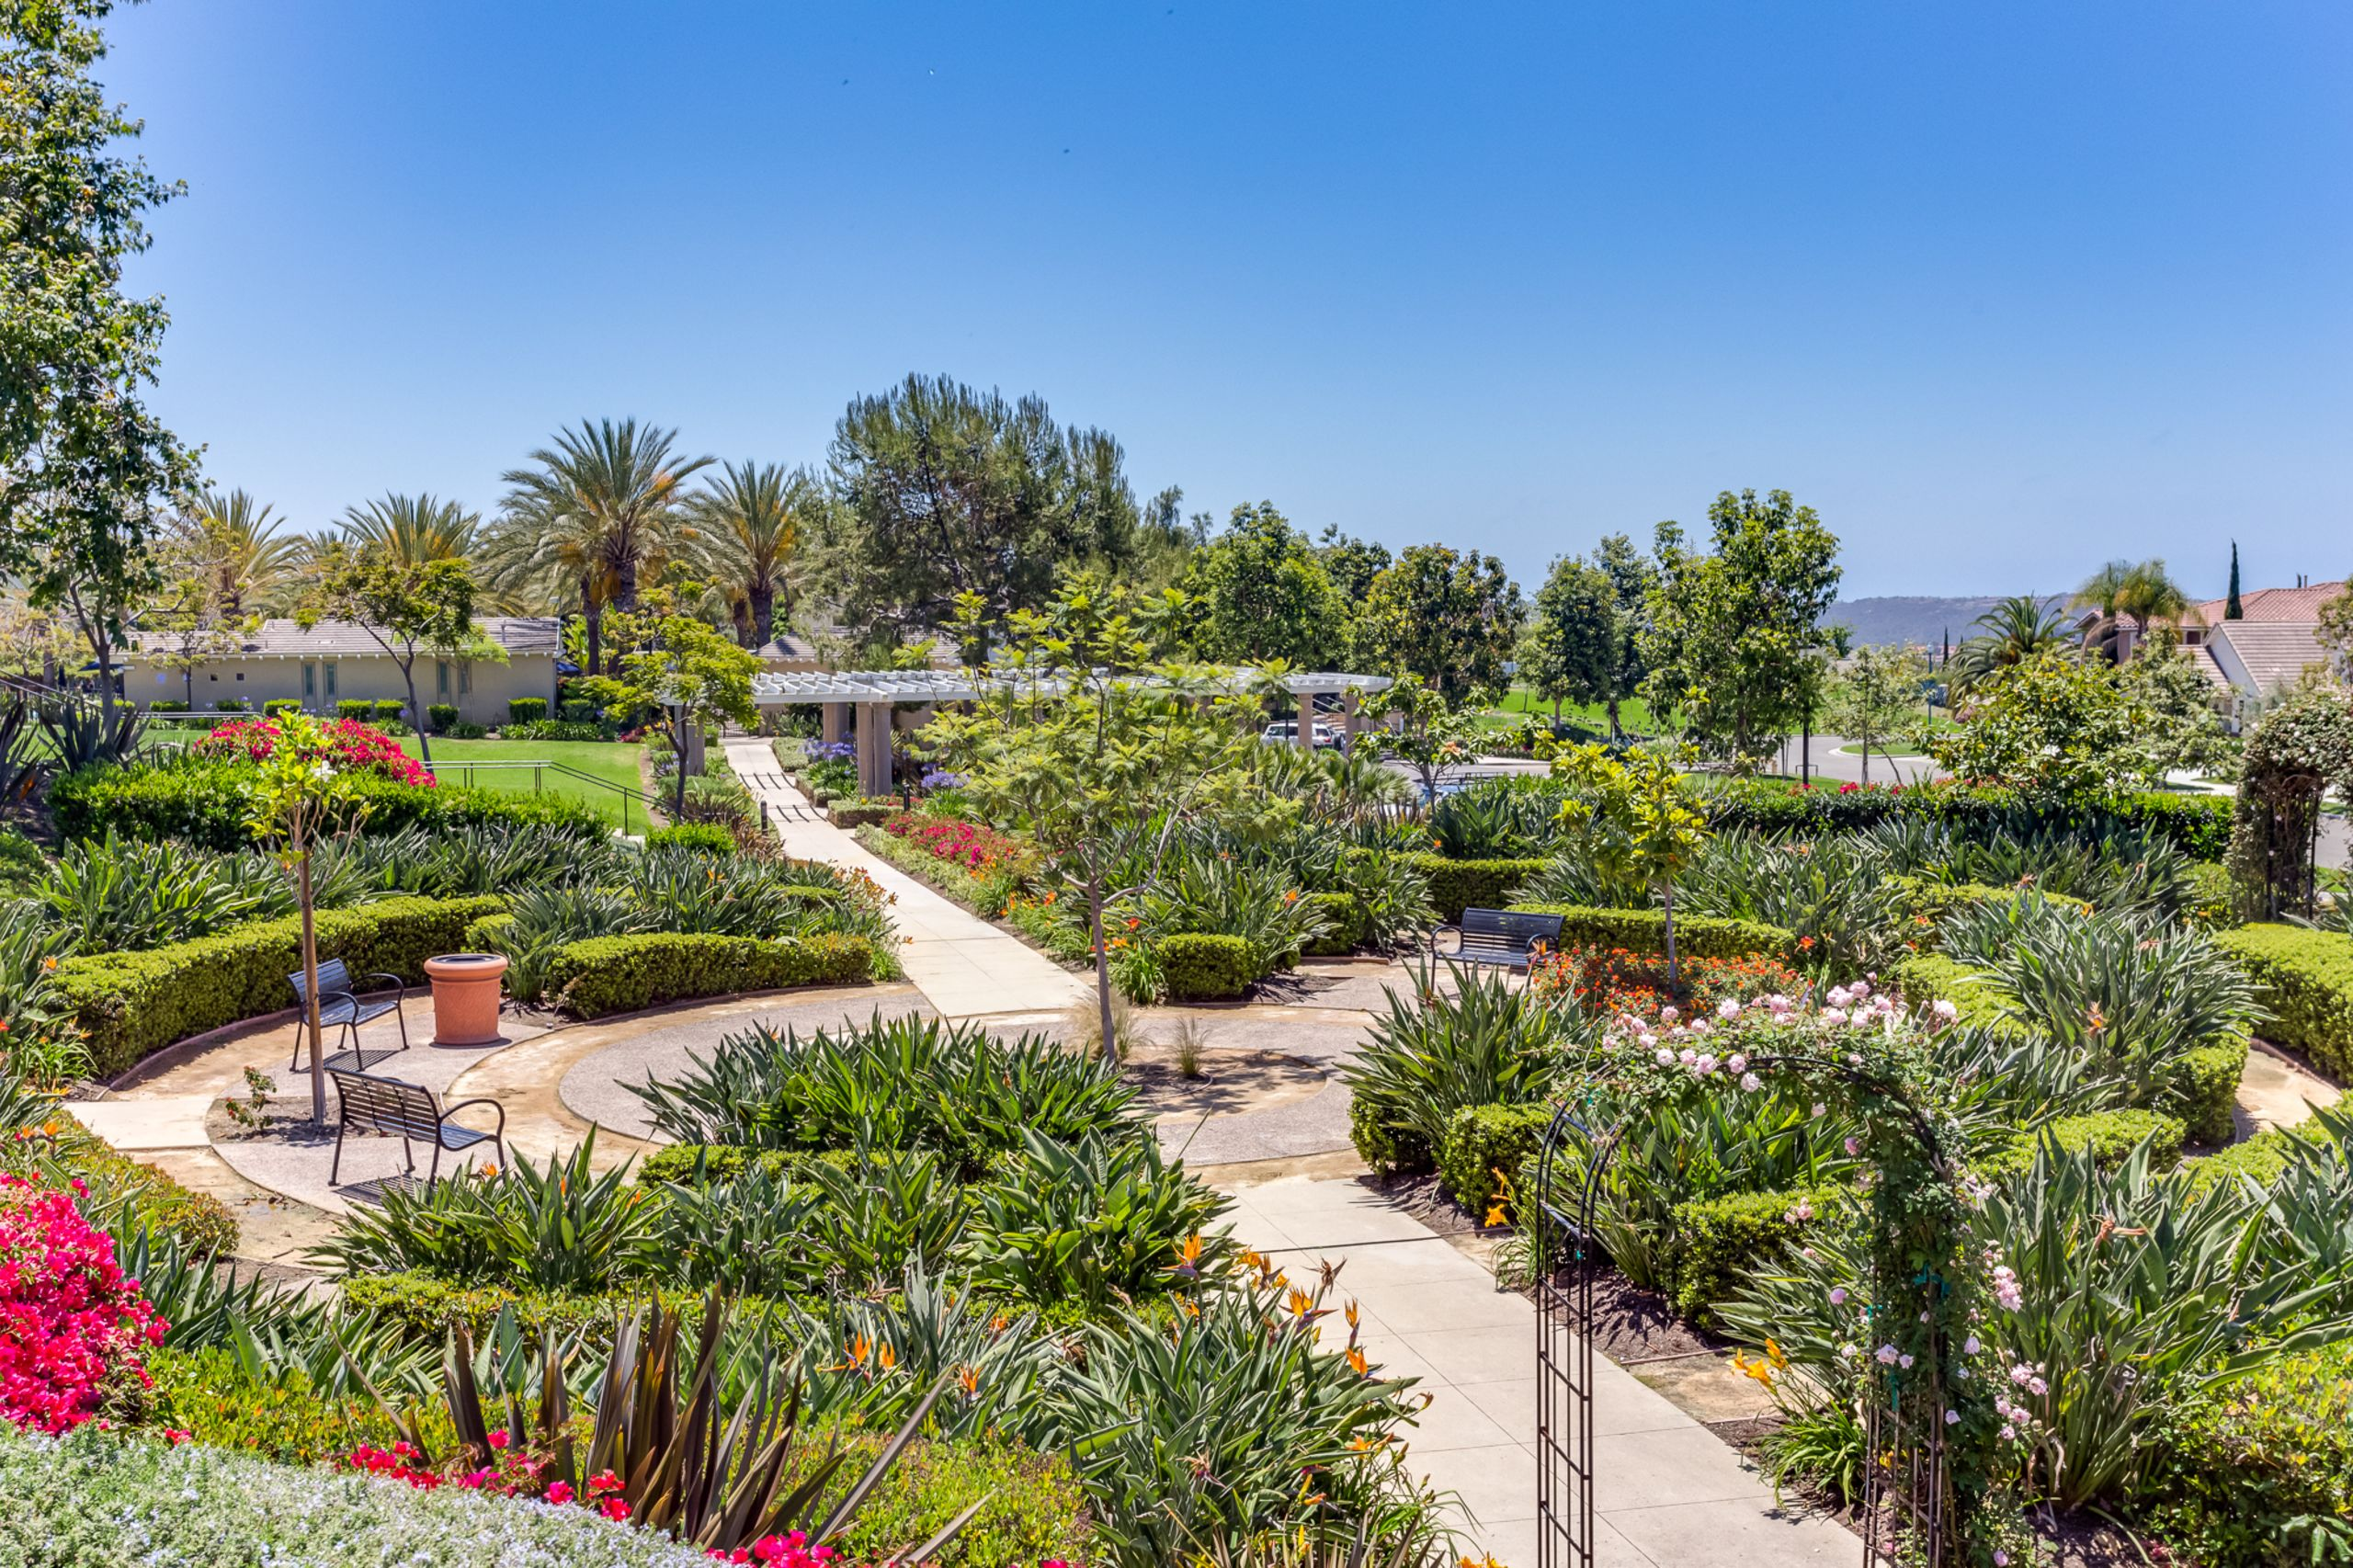 SAN DIEGO TO Los ANGELES - WE LOVE GARDENS